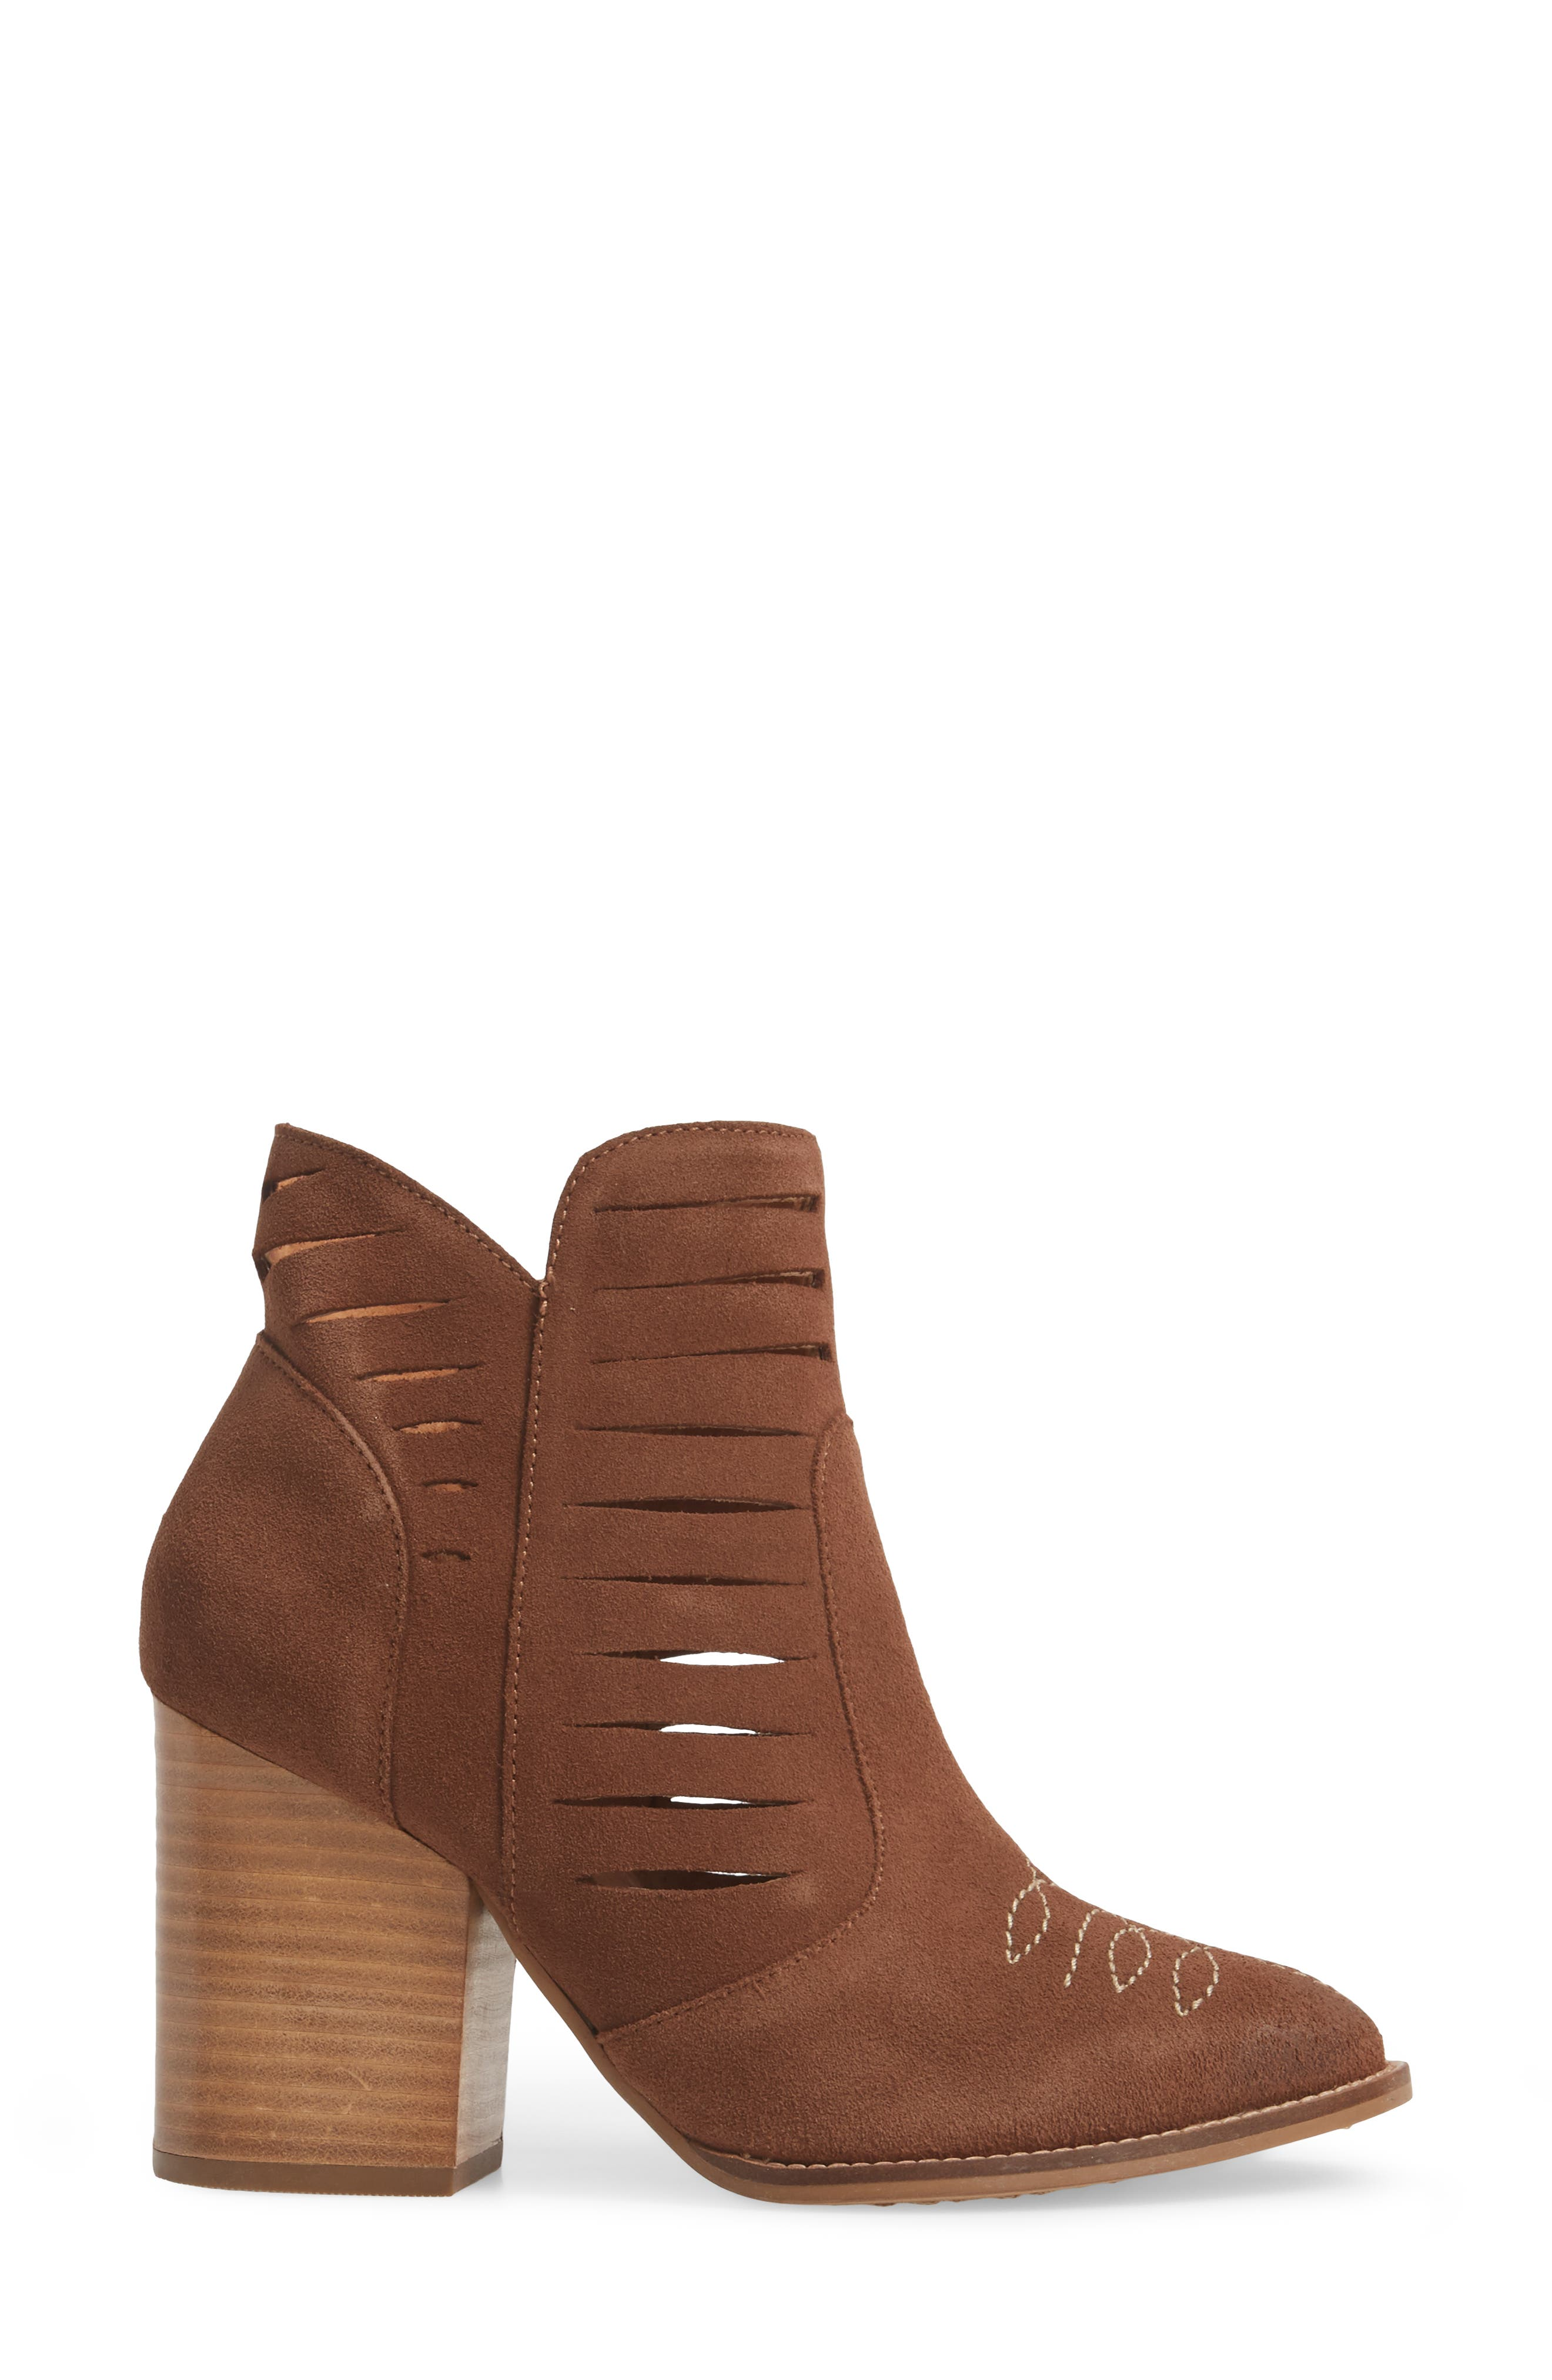 Adriana Western Bootie,                             Alternate thumbnail 3, color,                             Whiskey Suede